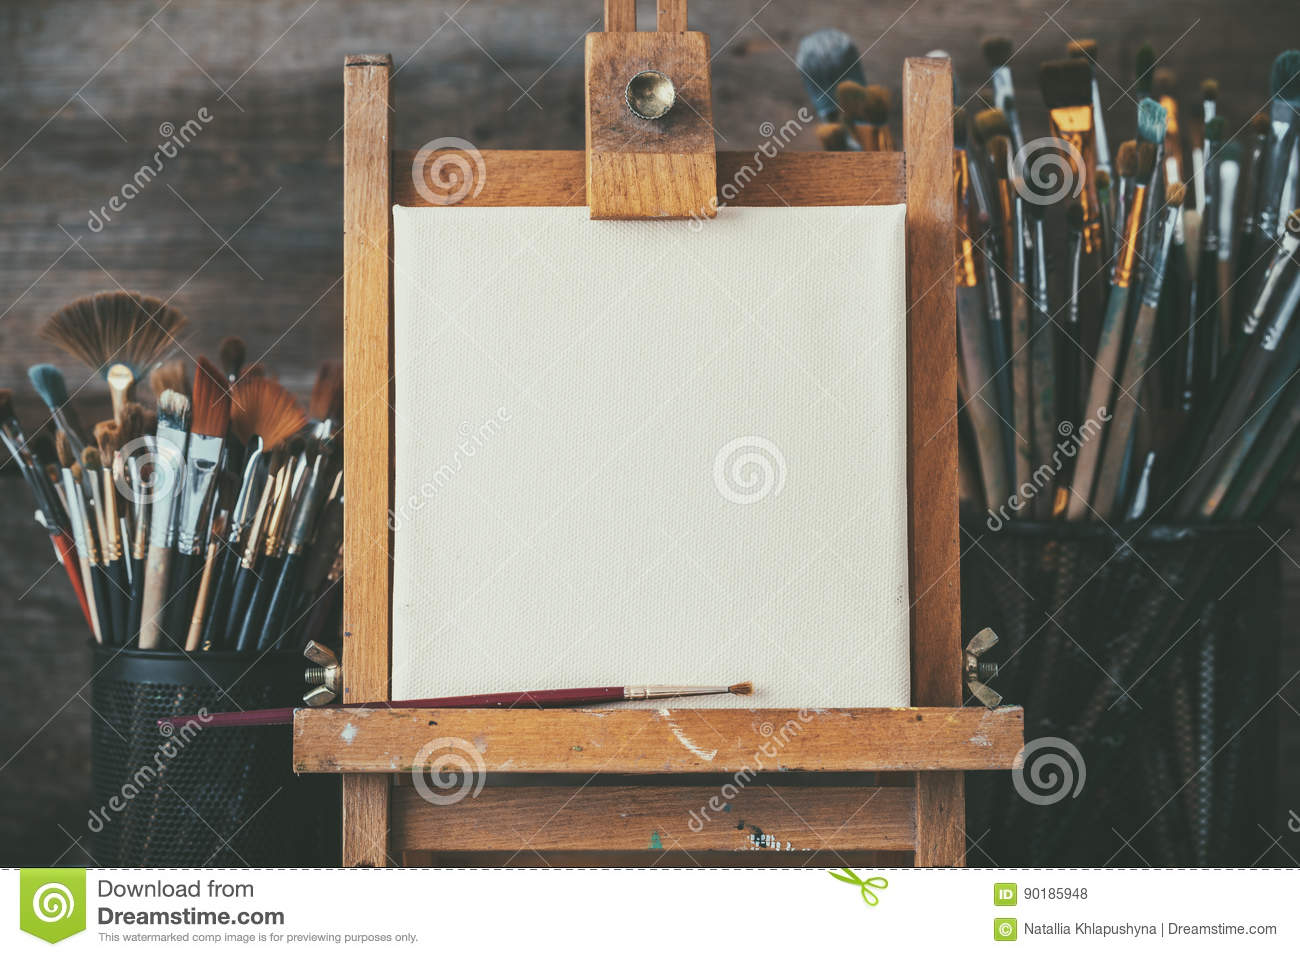 Artistic equipment in a artist studio: empty artist canvas and brushes.